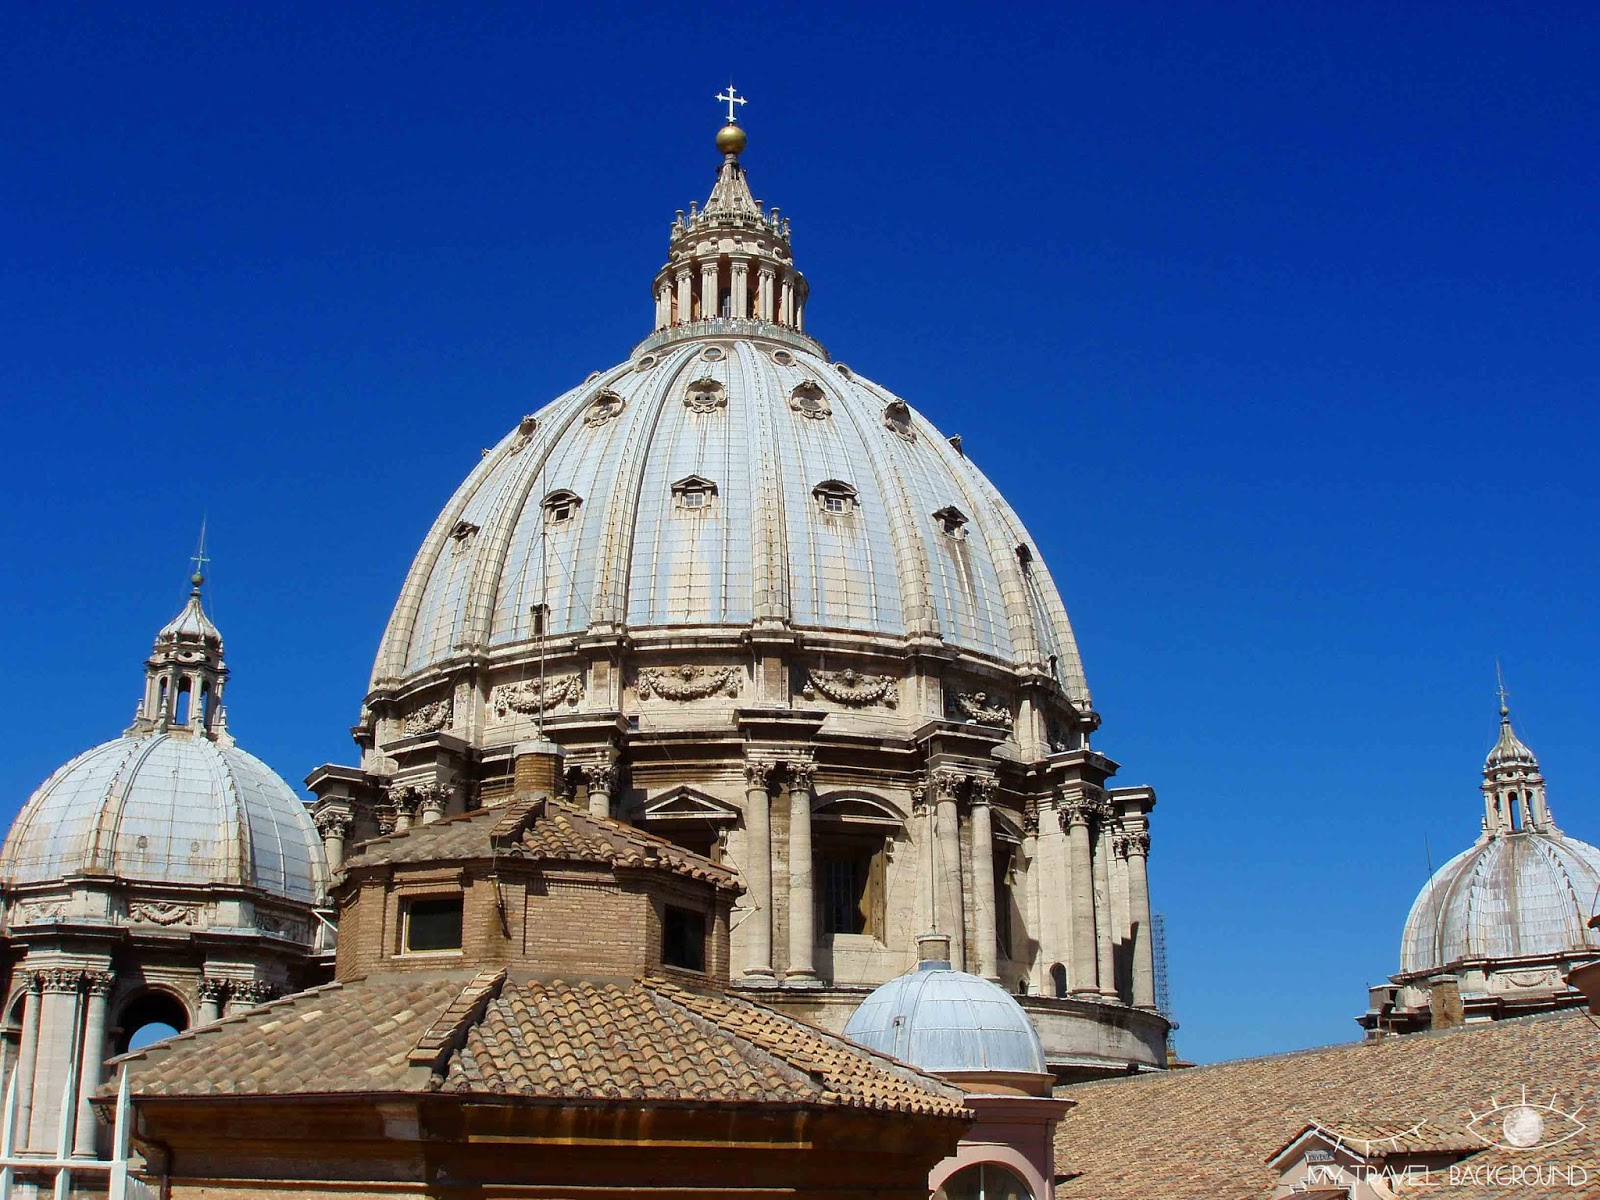 My Travel Background : Cartes Postale Vatican